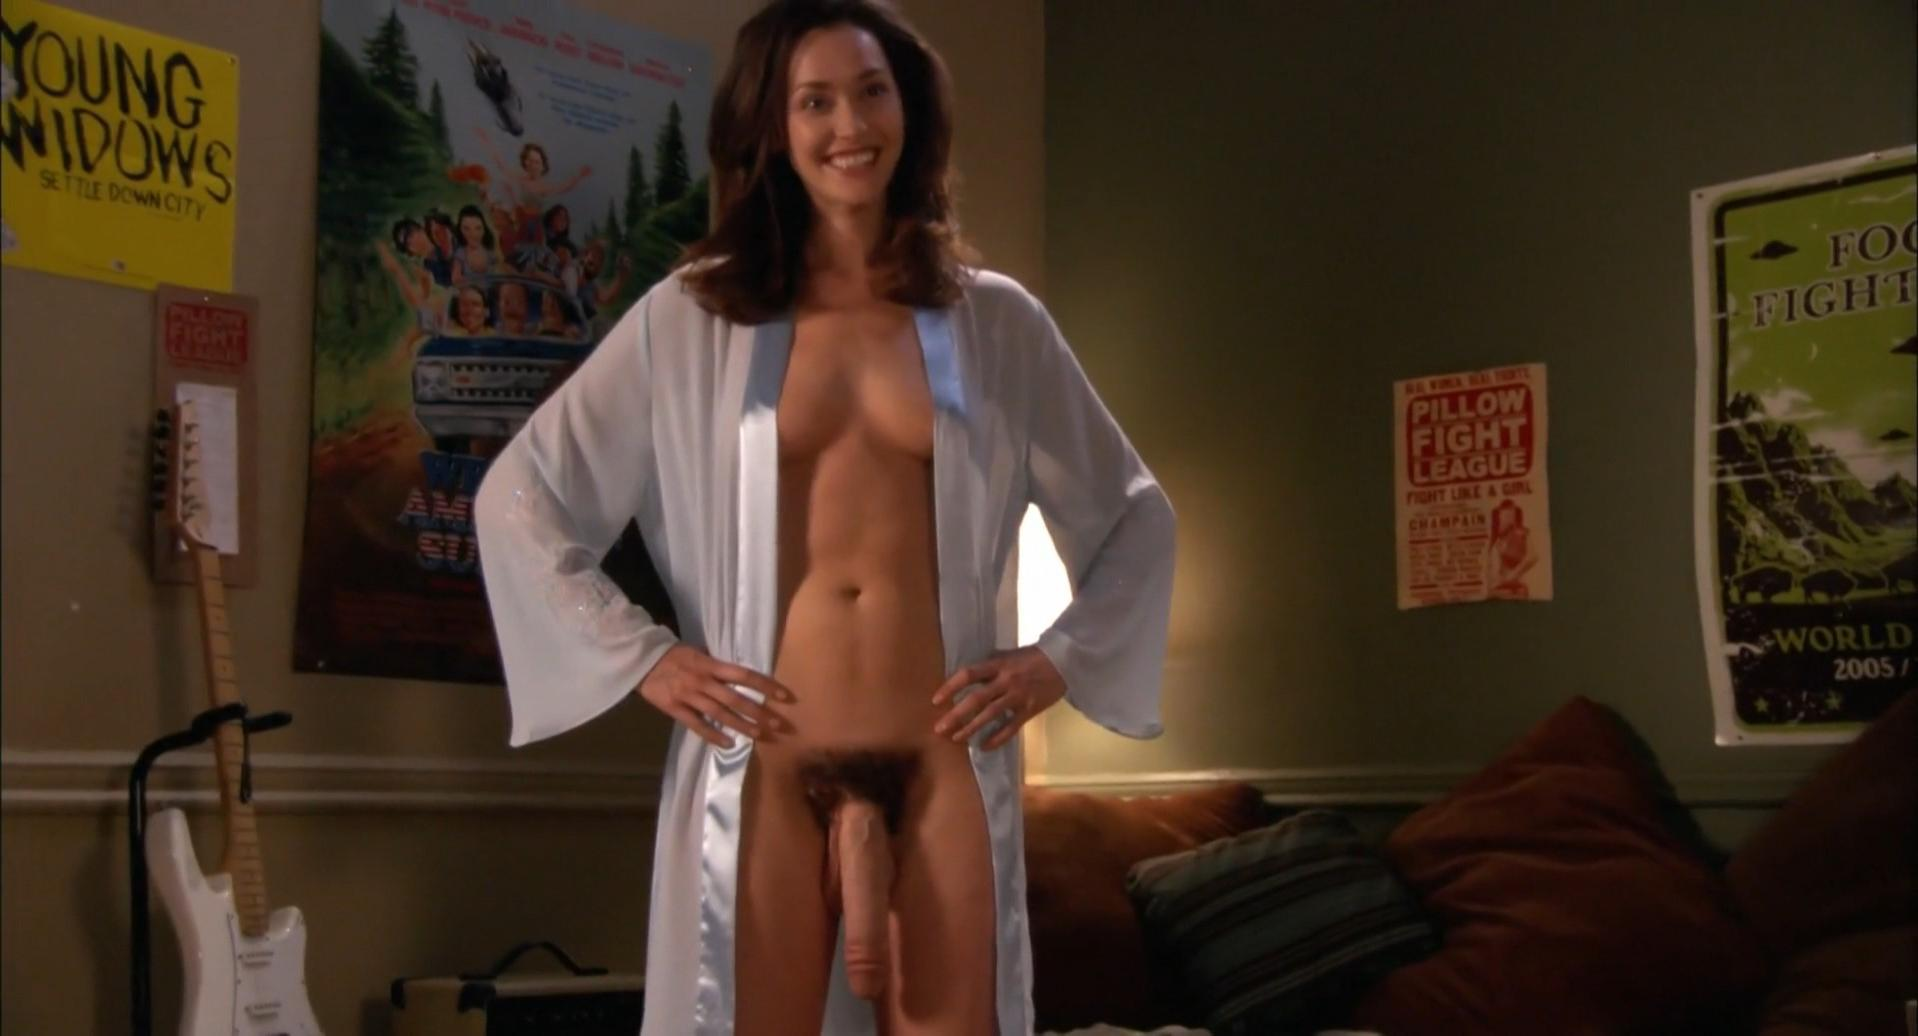 a-girl-from-american-pie-beta-house-naked